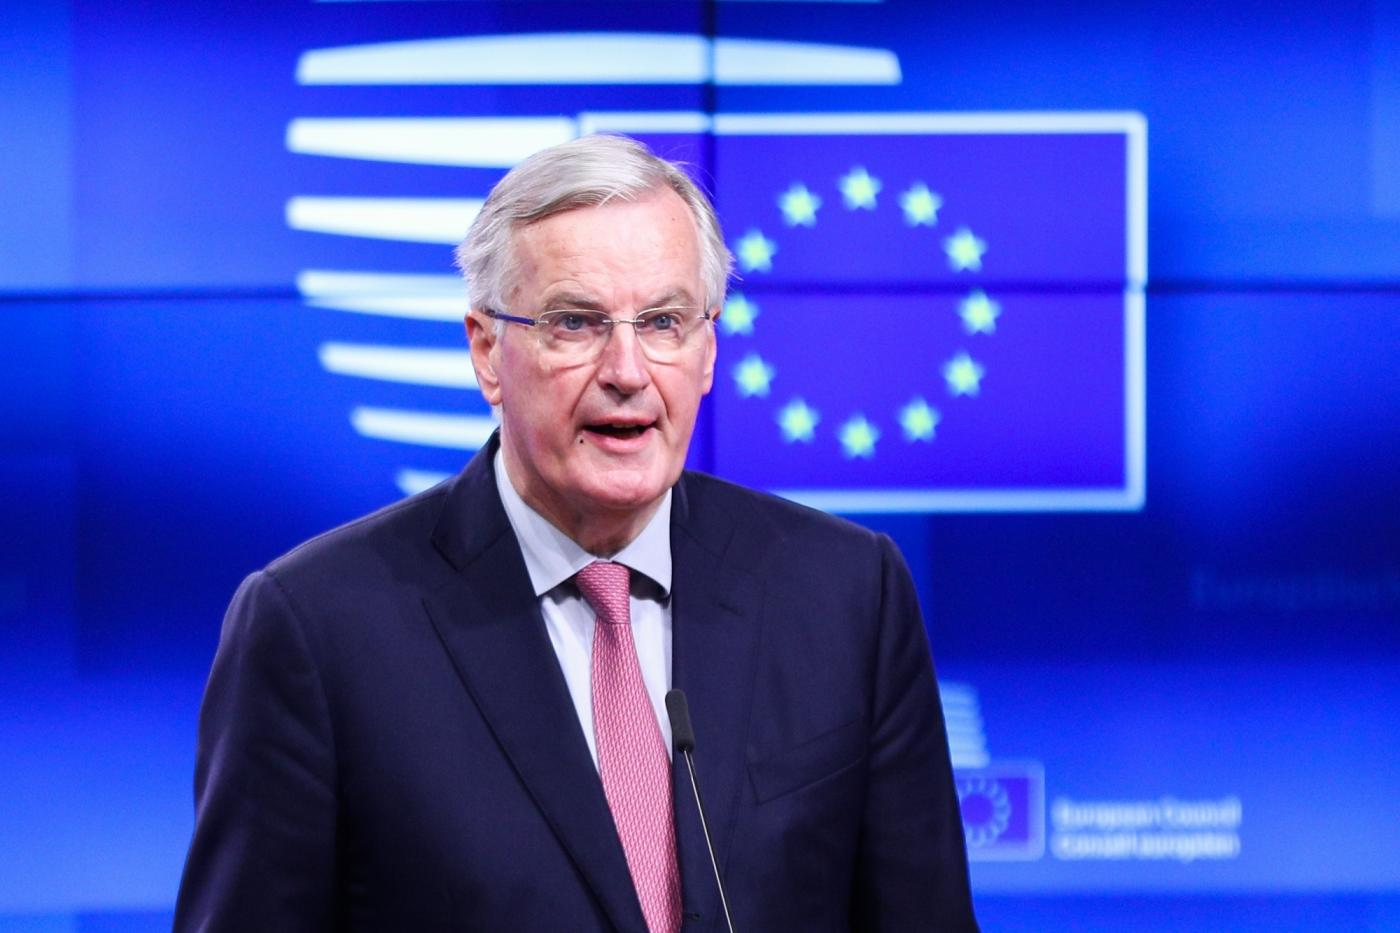 "BRUSSELS, Nov. 15, 2018 (Xinhua) -- European Union's chief negotiator Michel Barnier speaks at a press conference at the European Council in Brussels, Belgium, Nov. 15, 2018. A European Council meeting is expected on Nov. 25 in order to ""finalize and formalize the Brexit agreement,"" European Council President Donald Tusk told reporters Thursday. (Xinhua/Zheng Huansong/IANS) by ."